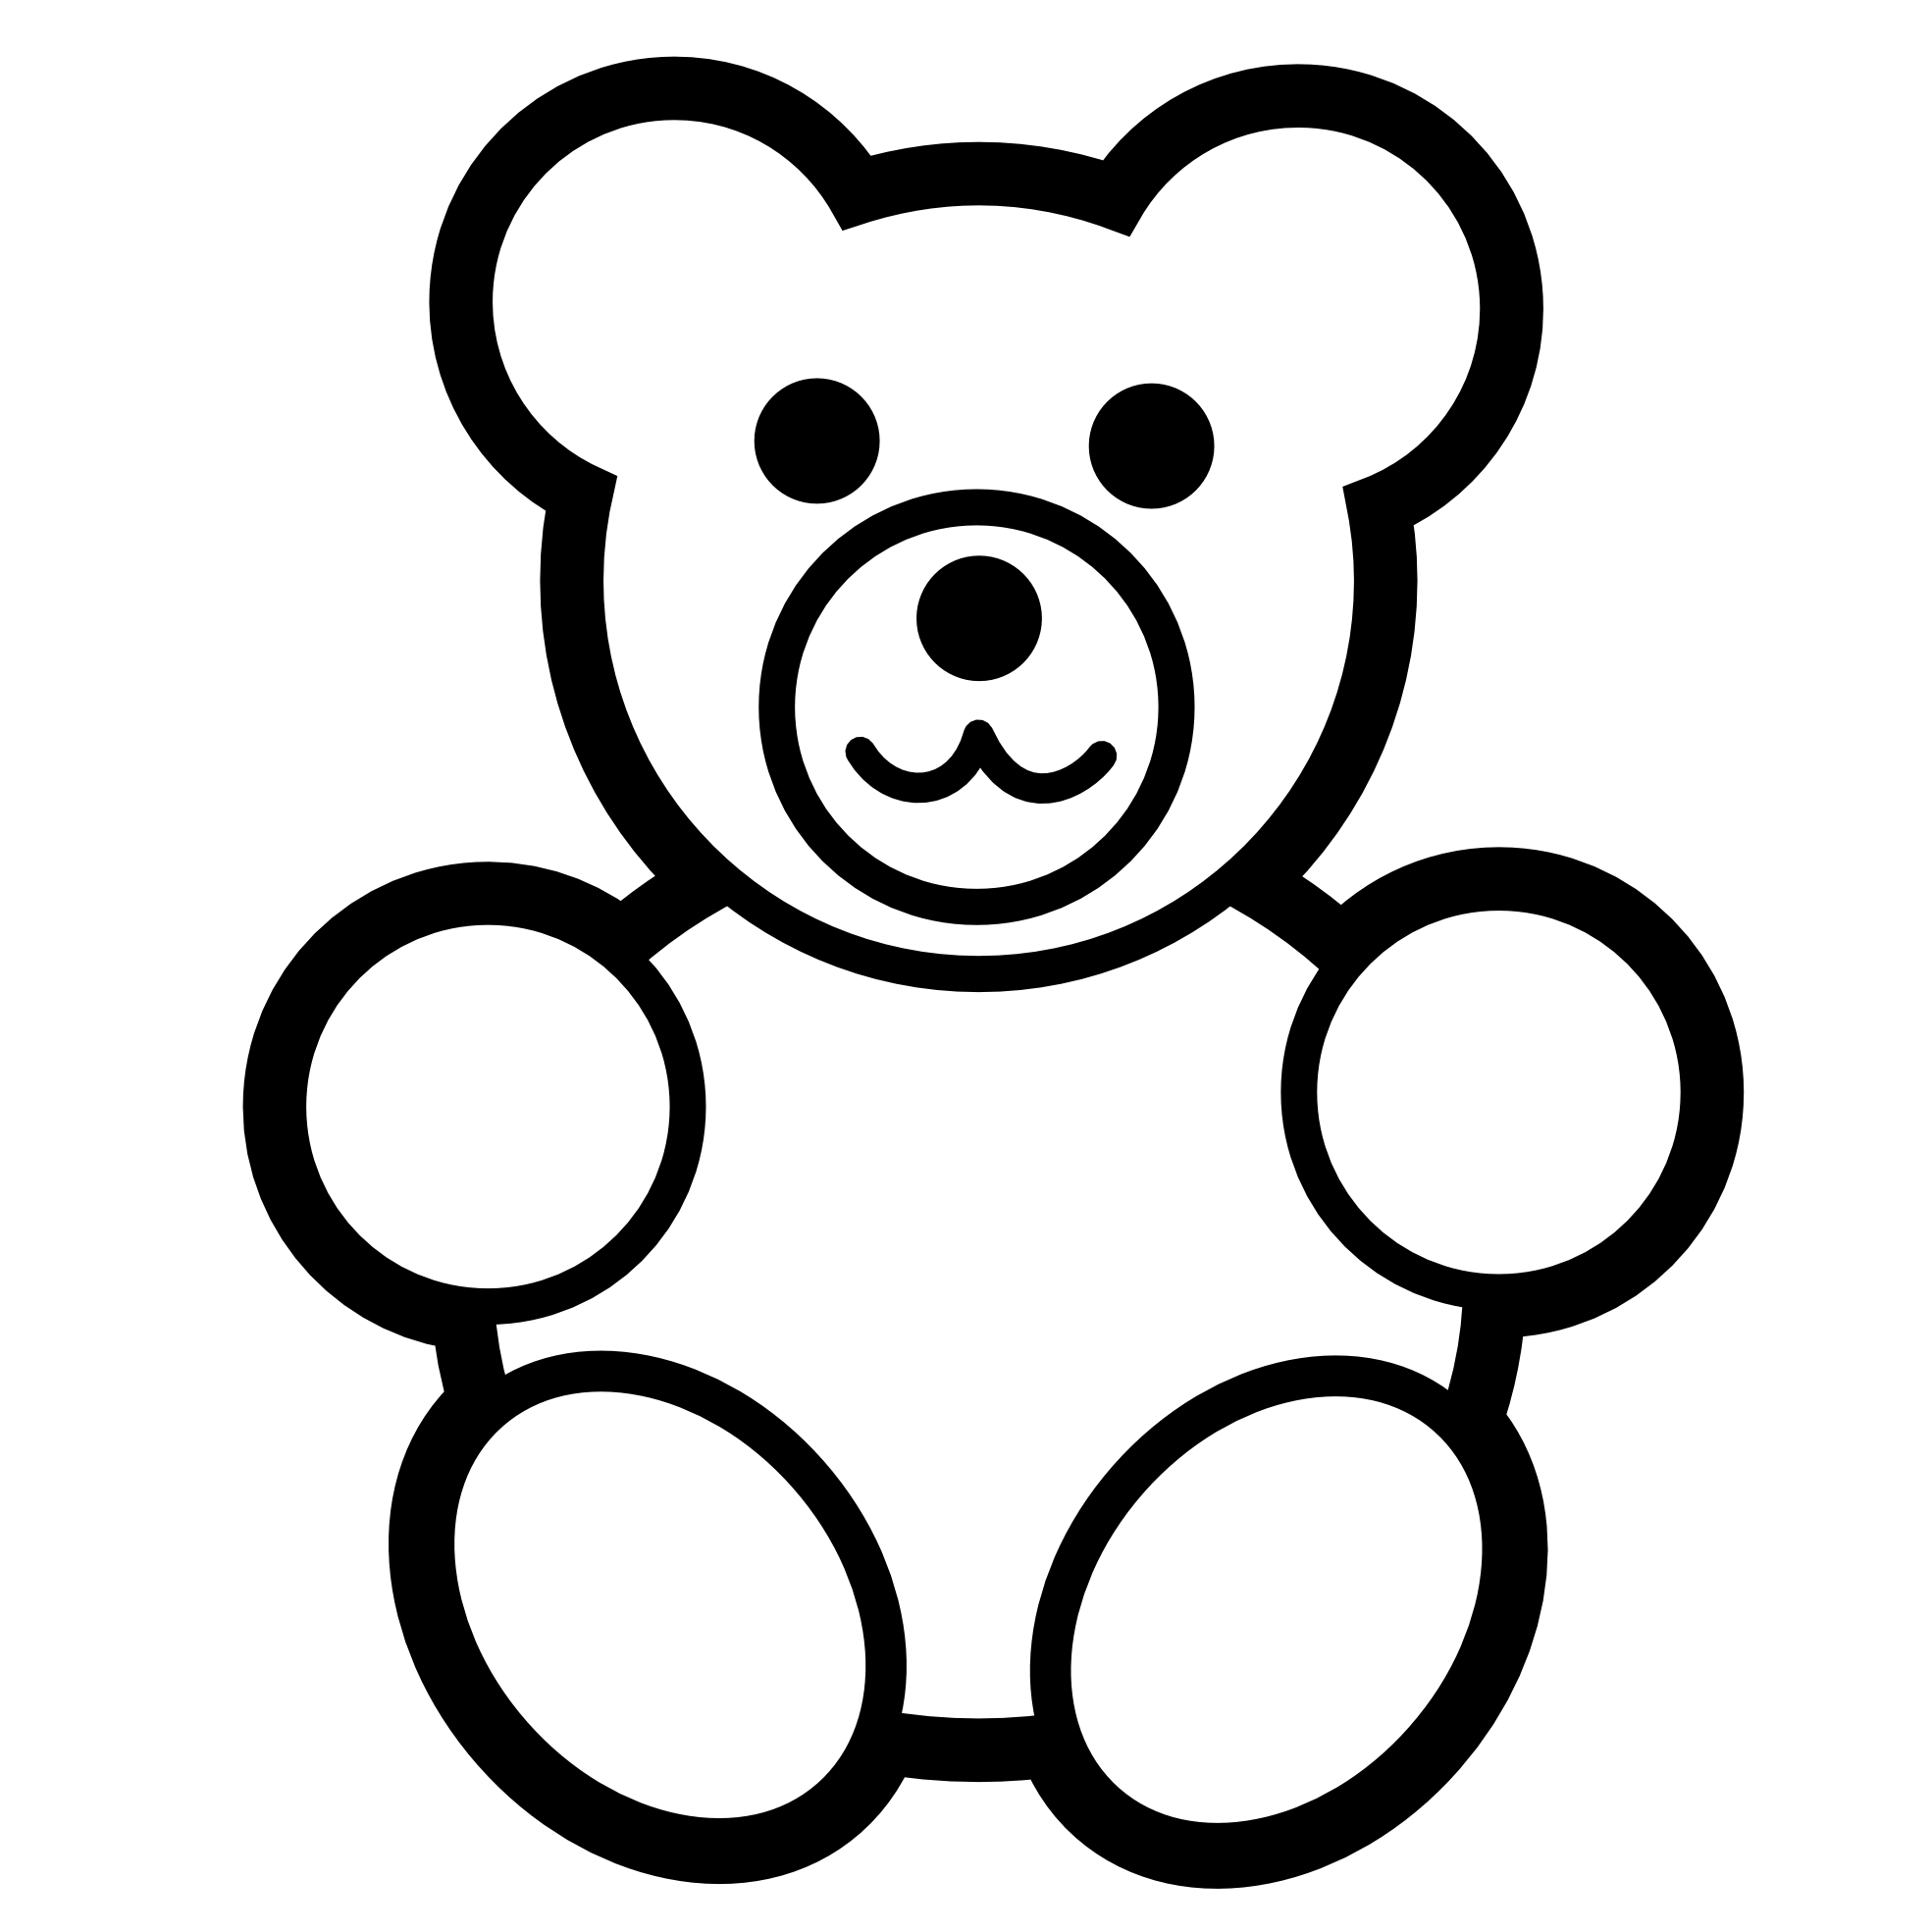 clipart Stuffed animal clipart. Images for baby toys